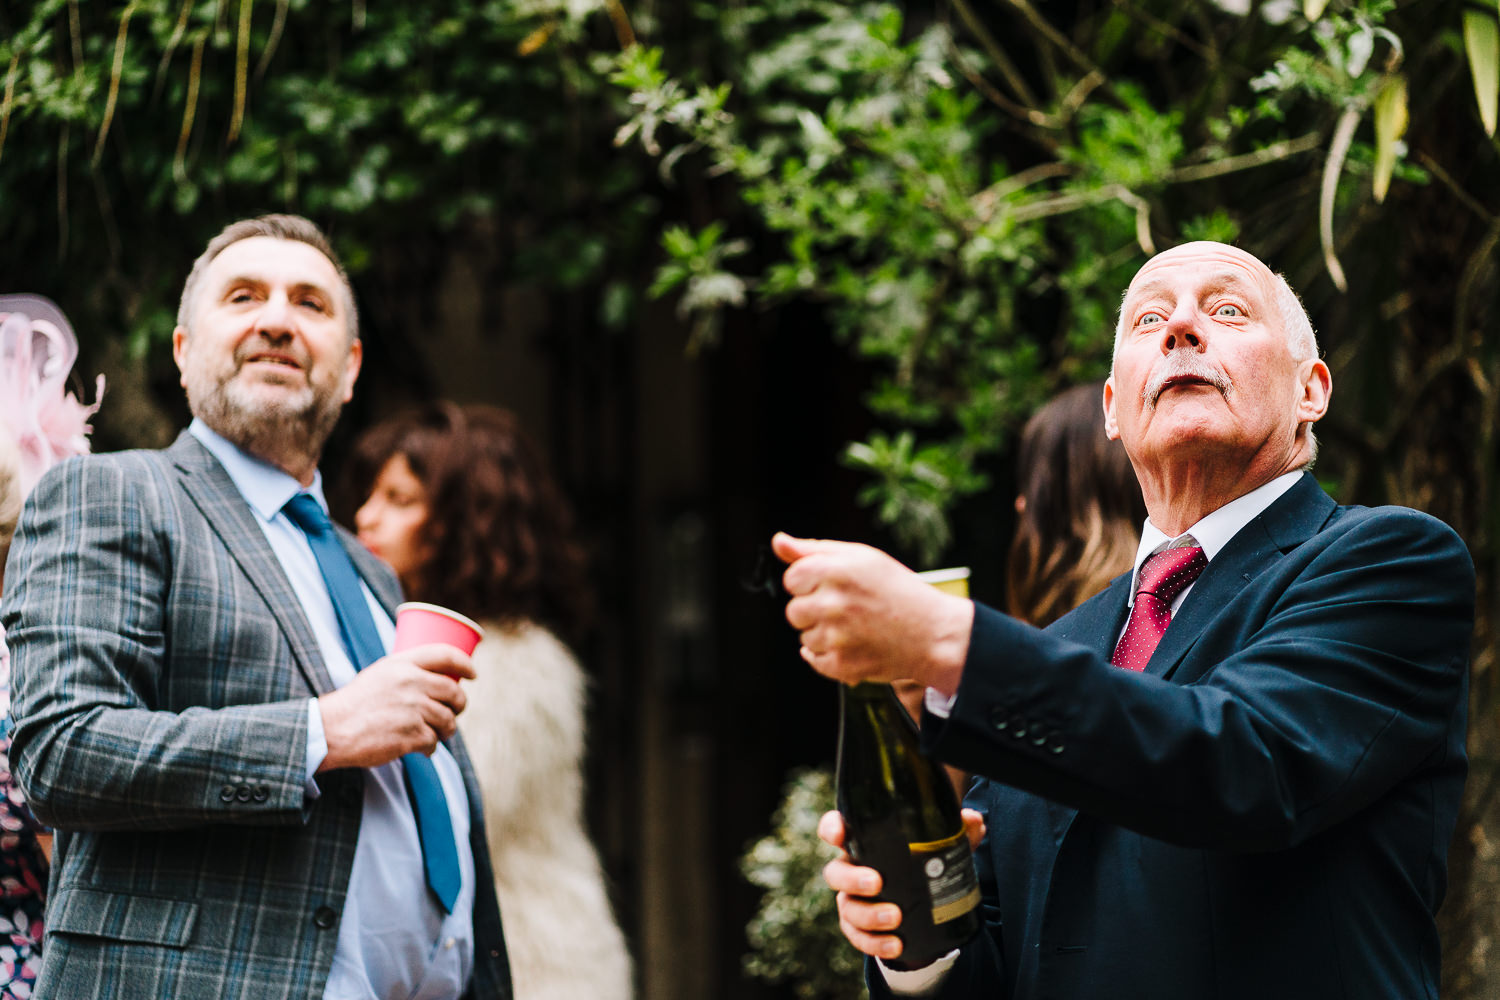 Father of the groom opening up Prosecco